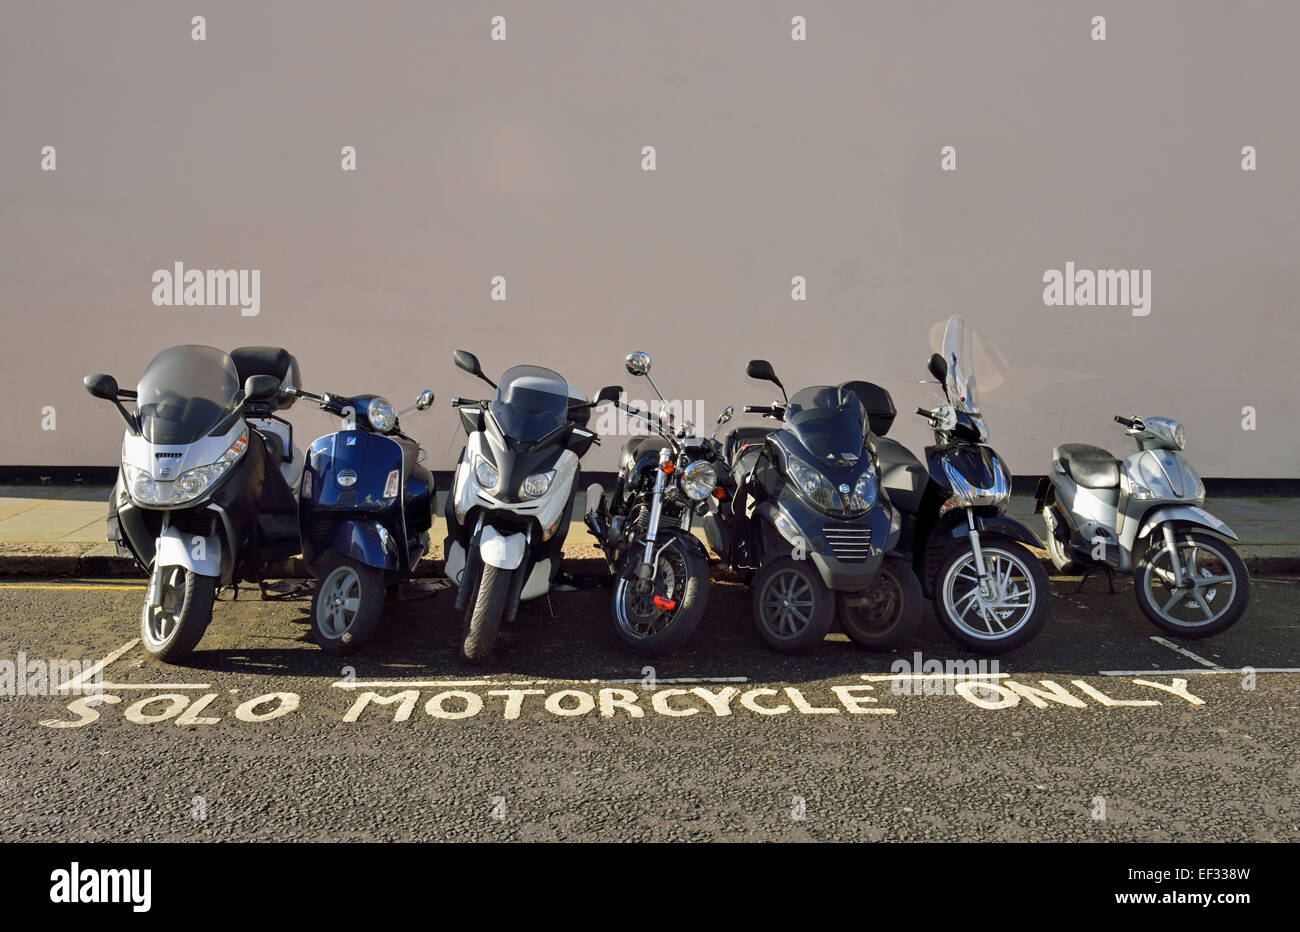 free motorcycle parking knightsbridge  Motorcycle Parking Uk Stock Photos